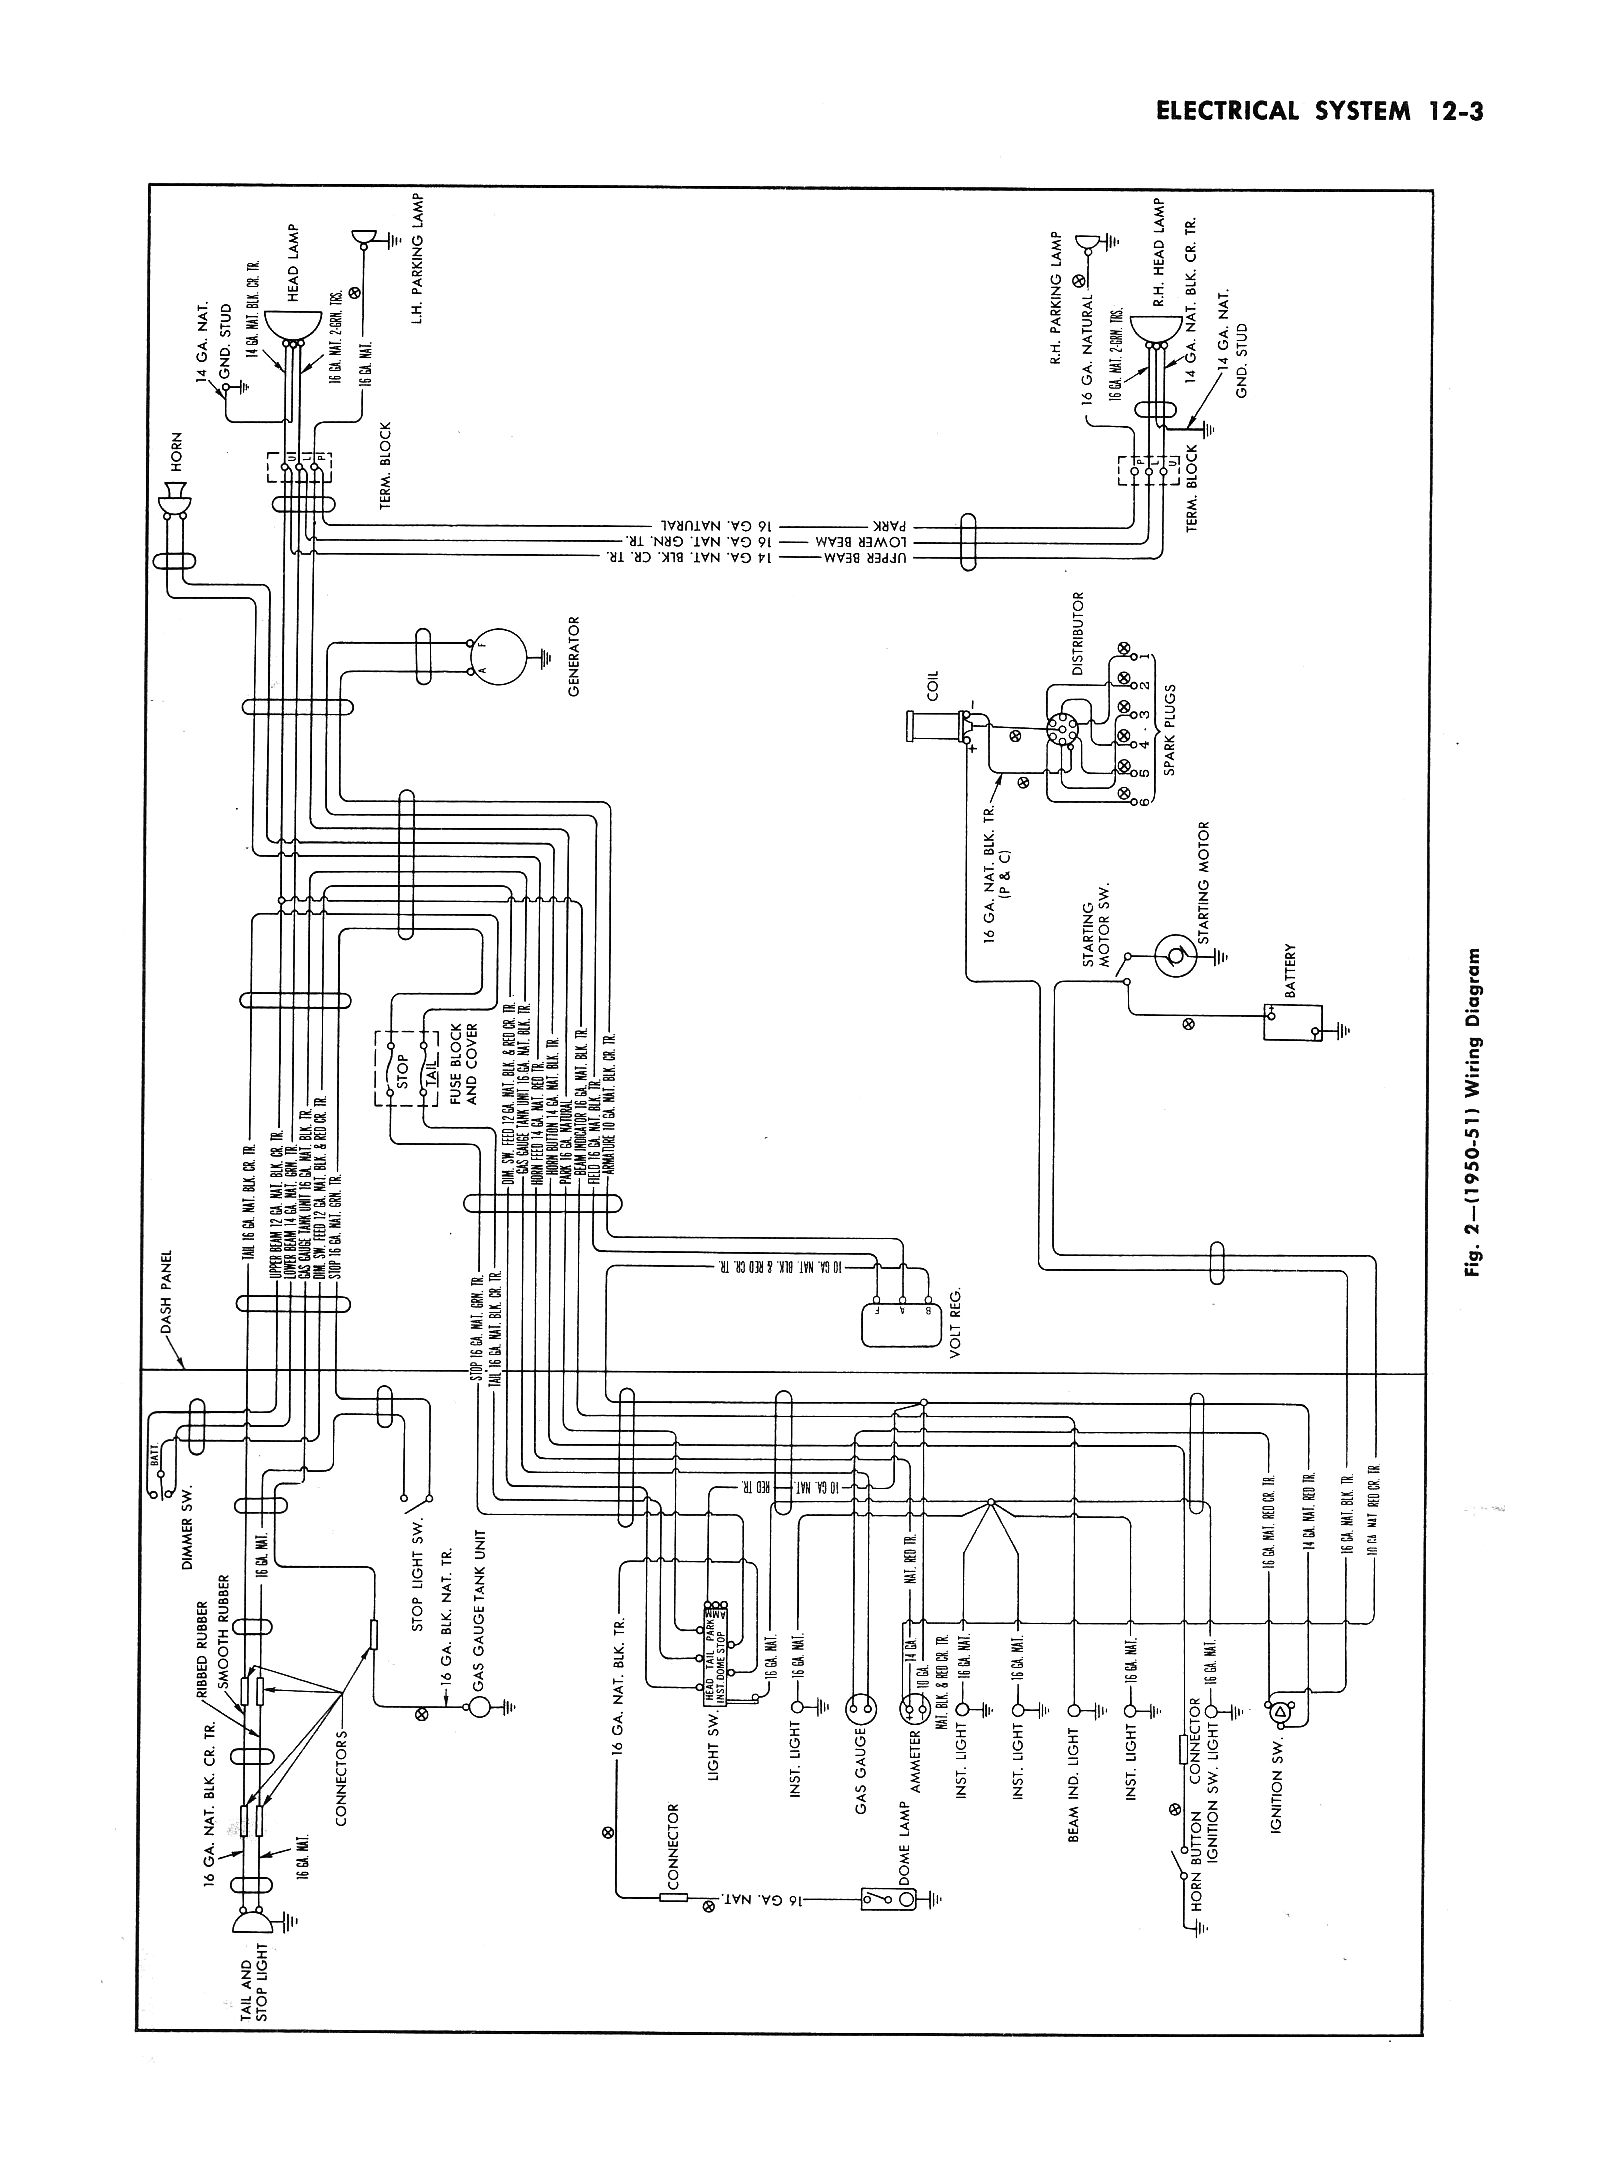 Basic Ke Light Wiring Diagram Library Harness 1950 Truck